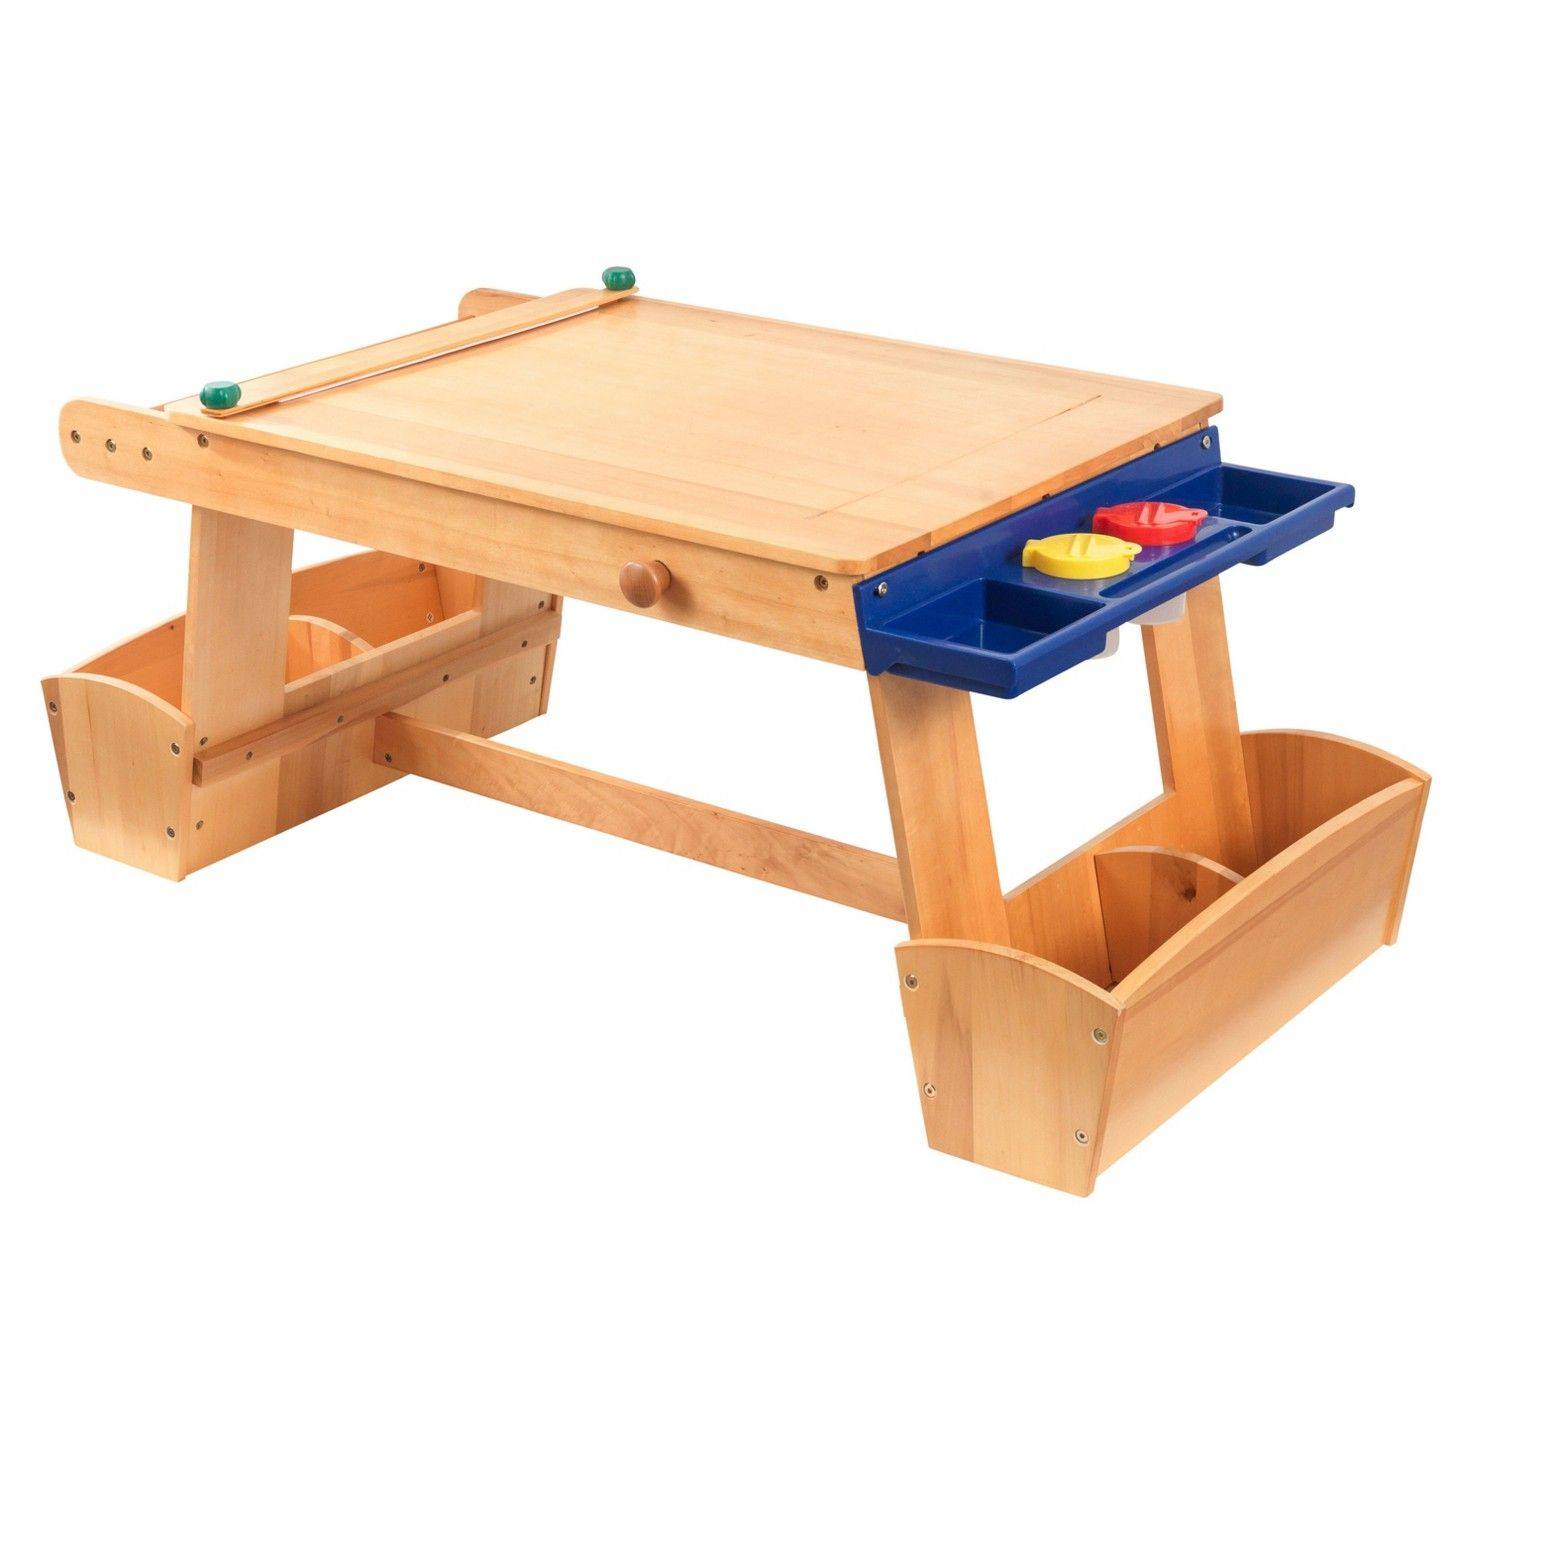 The kidkraft art table with drying rack storage will be